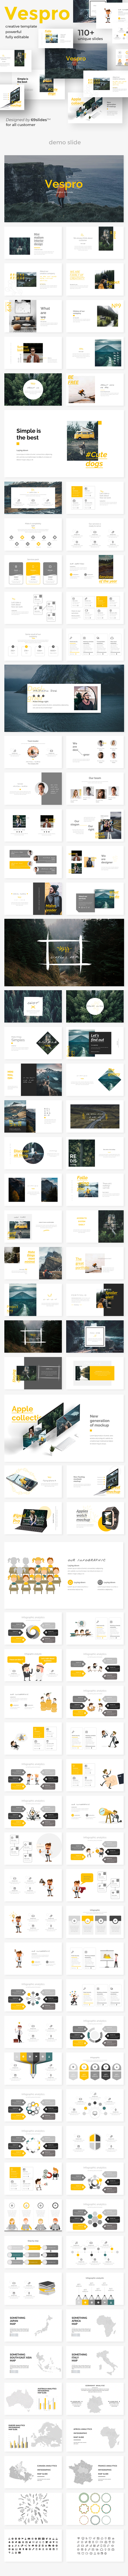 Vespro Creative Keynote Template - Creative Keynote Templates